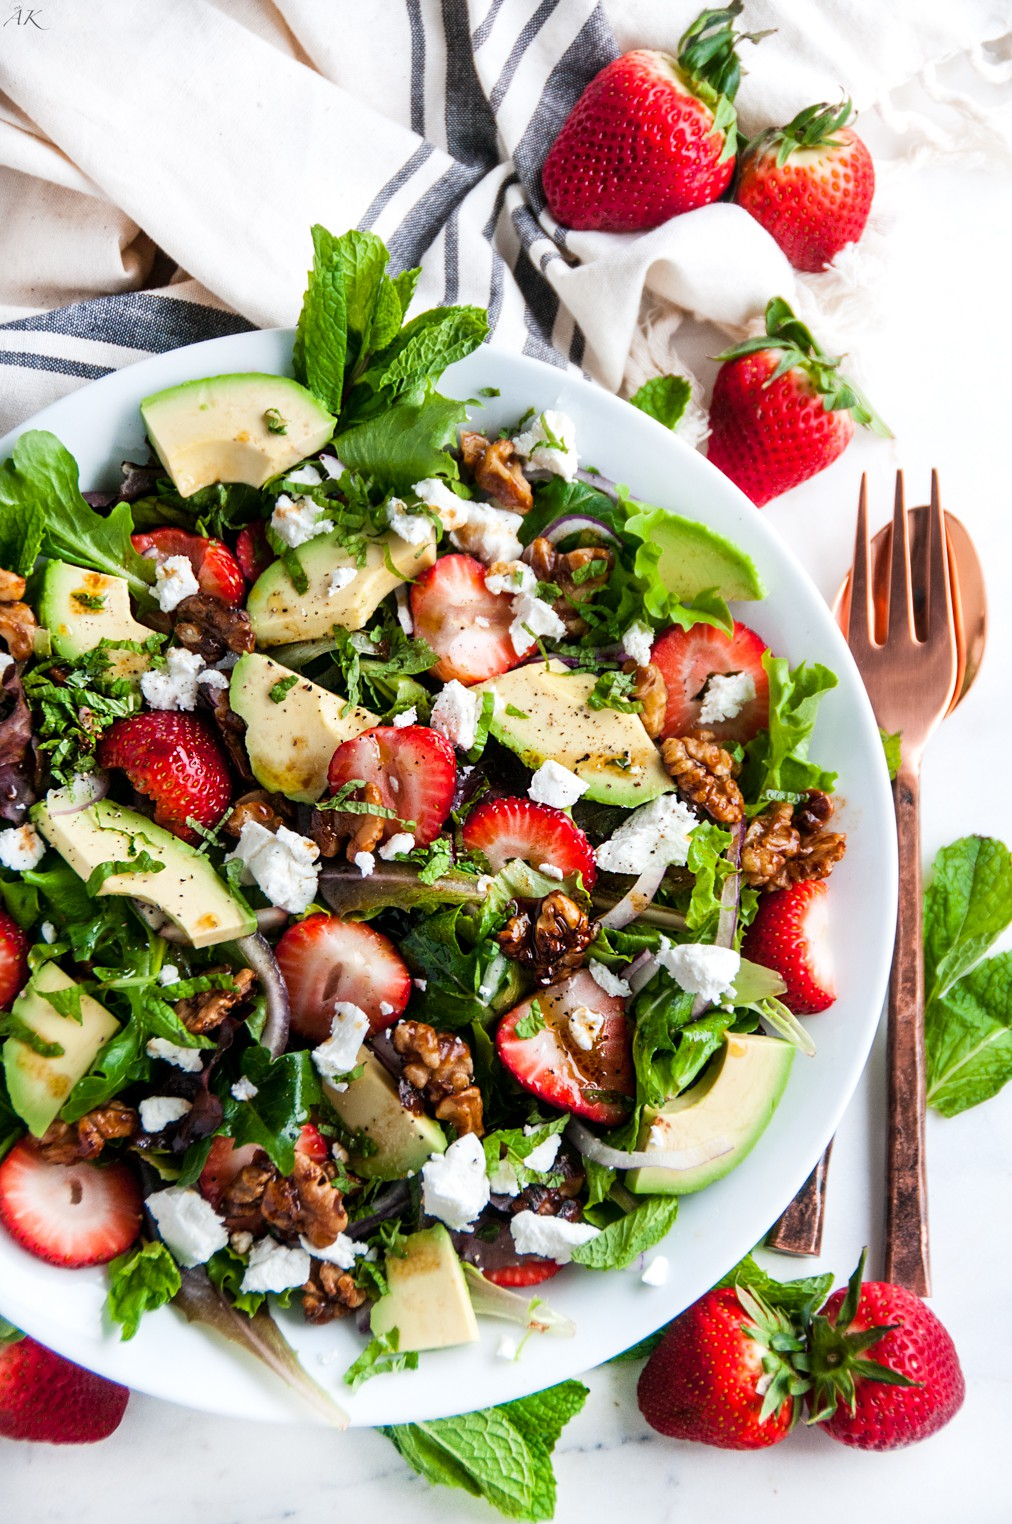 Strawberry-Mint-Avocado-Salad-2.jpg